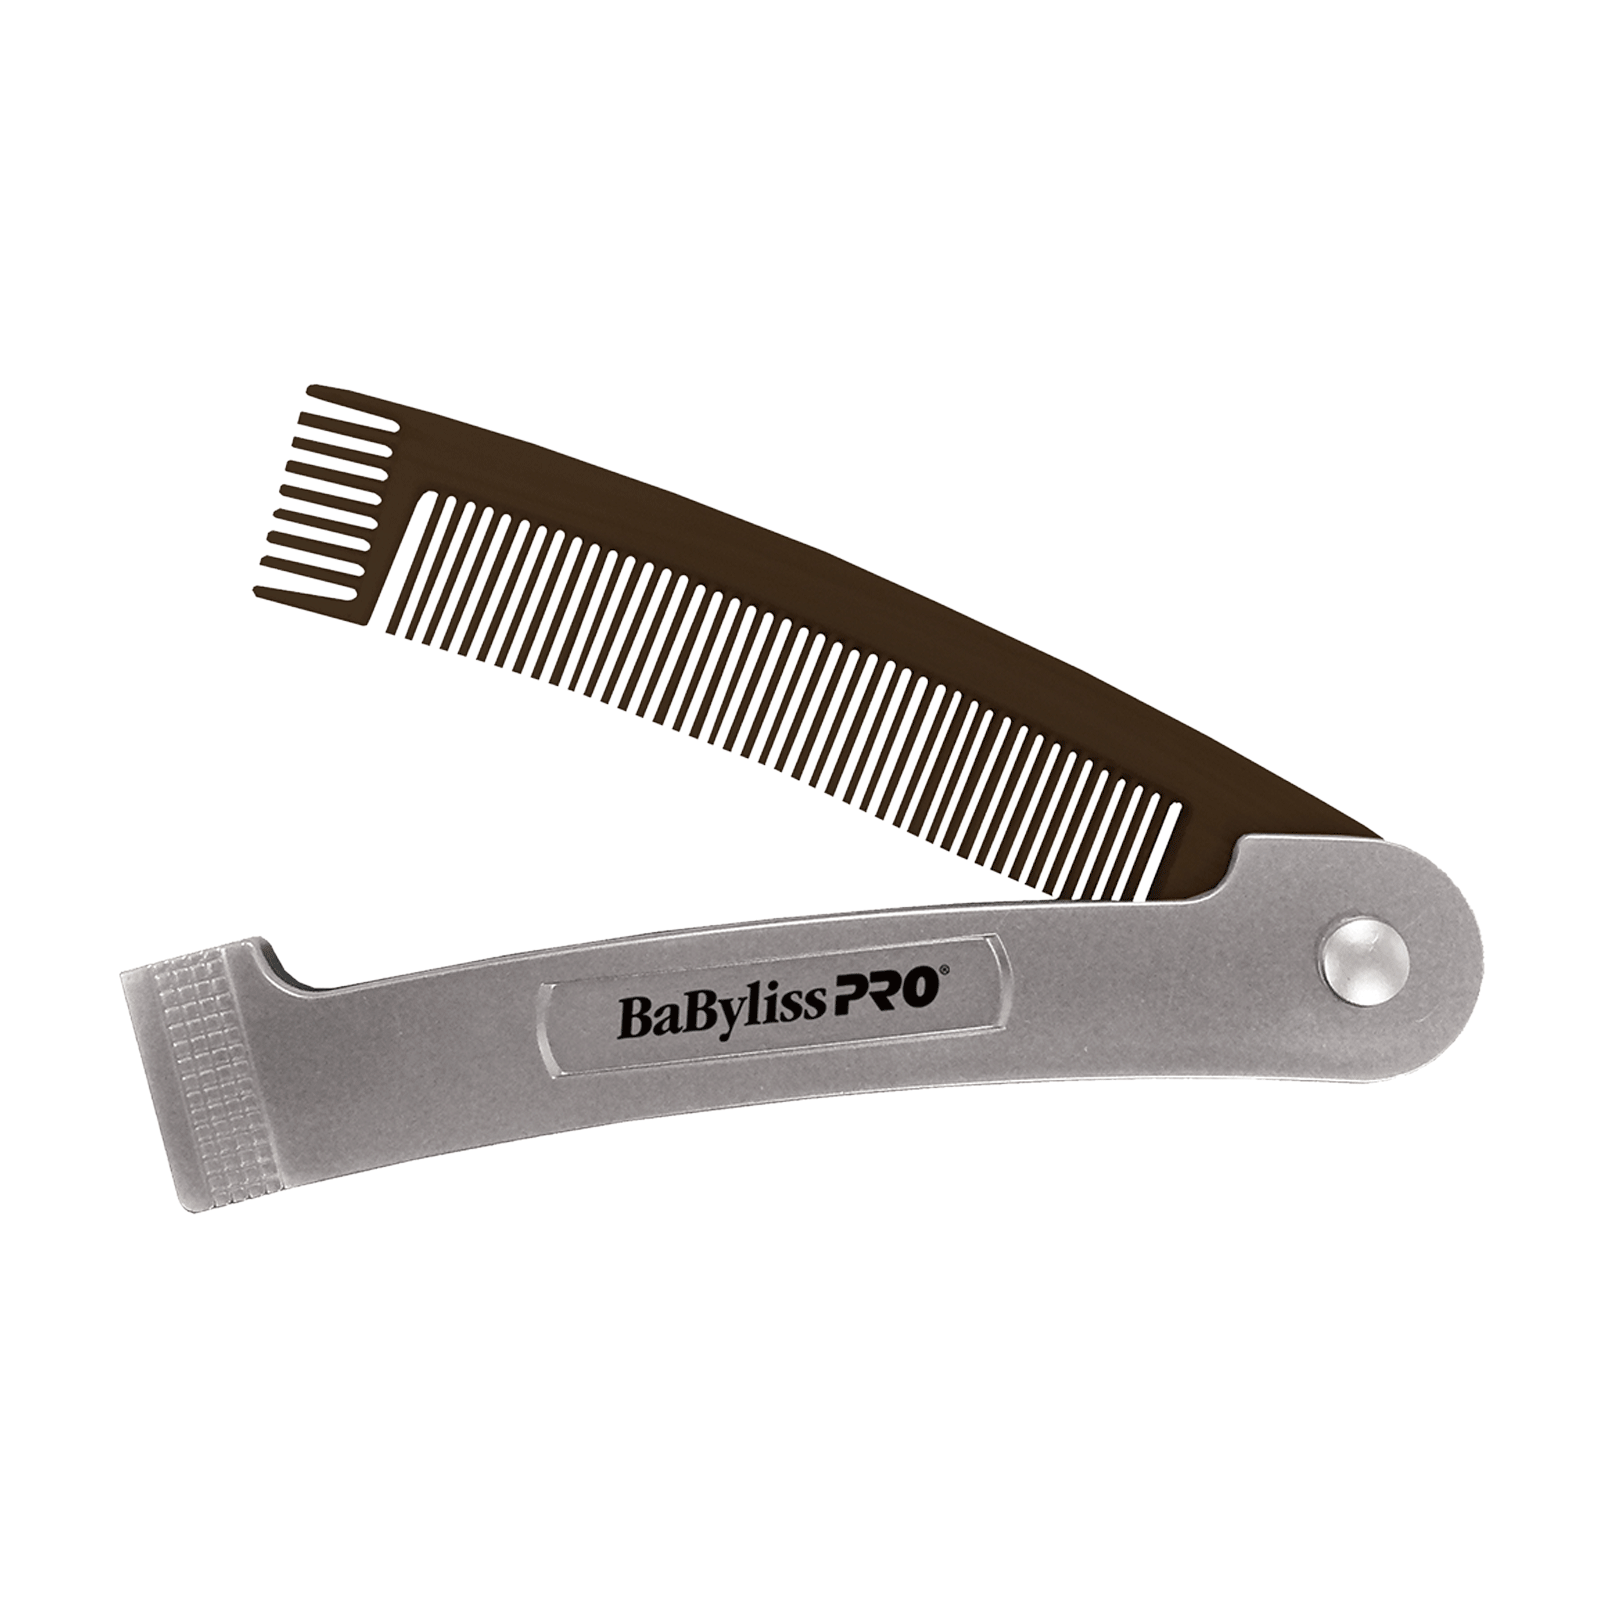 BaBylissPRO 2-in-1 Hair & Beard Comb